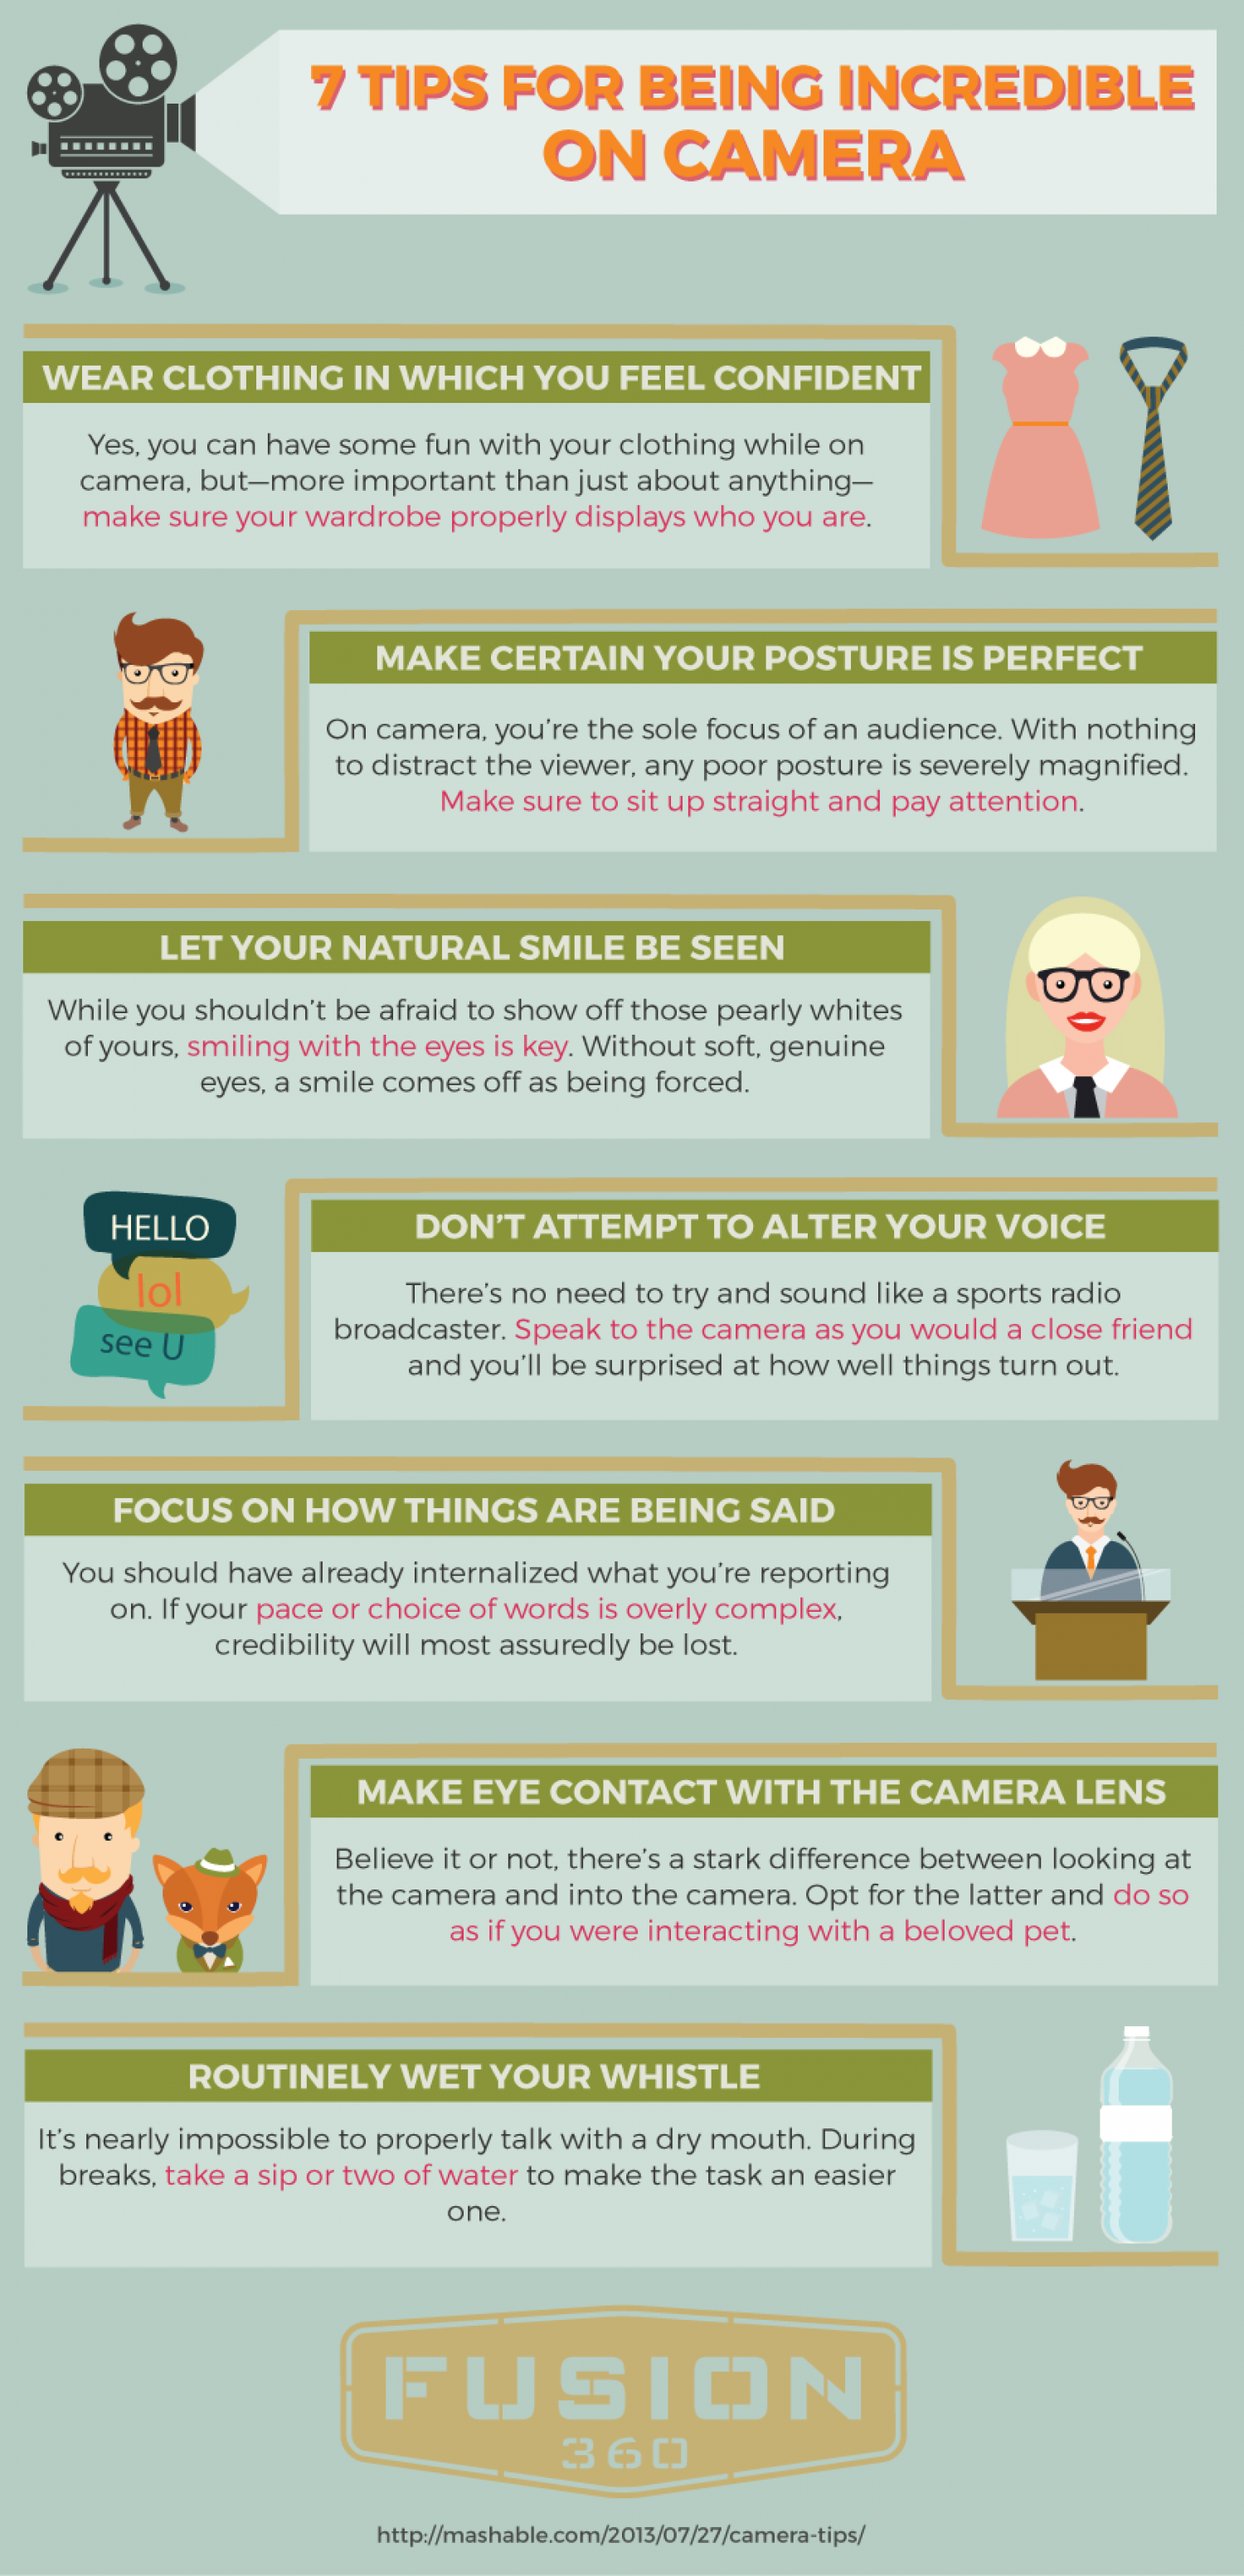 7 Straightforward Tips for Being Incredible On Camera Infographic